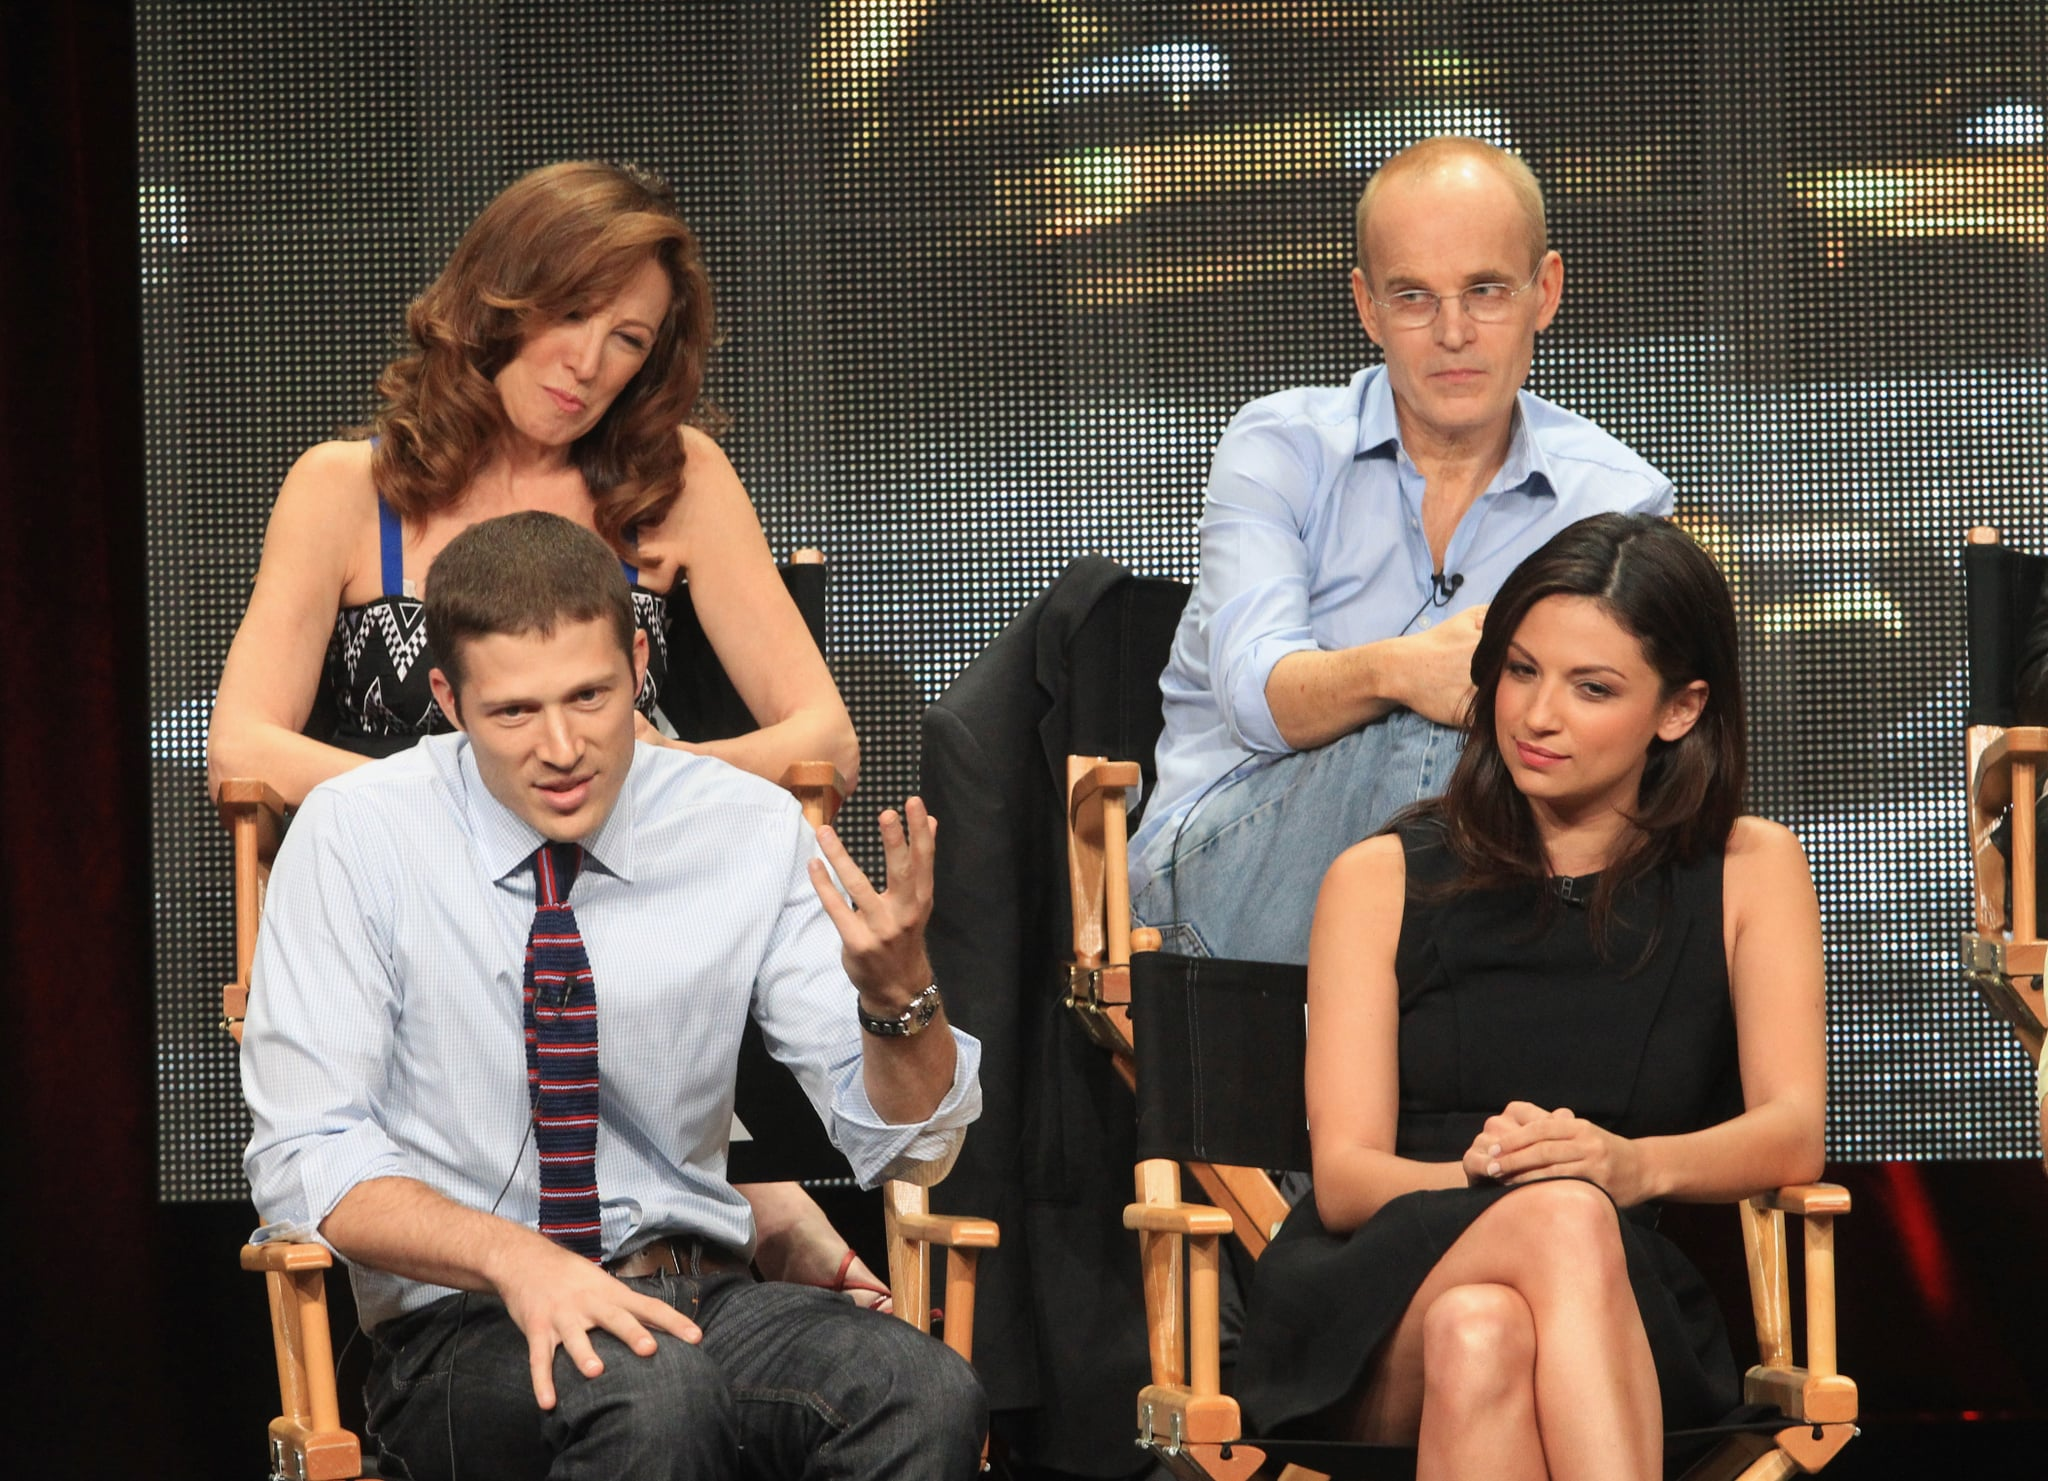 Wendy Makkena, Zeljko Ivanek, Floriana Lima, and Zach Gilford spoke about The Mob Doctor.